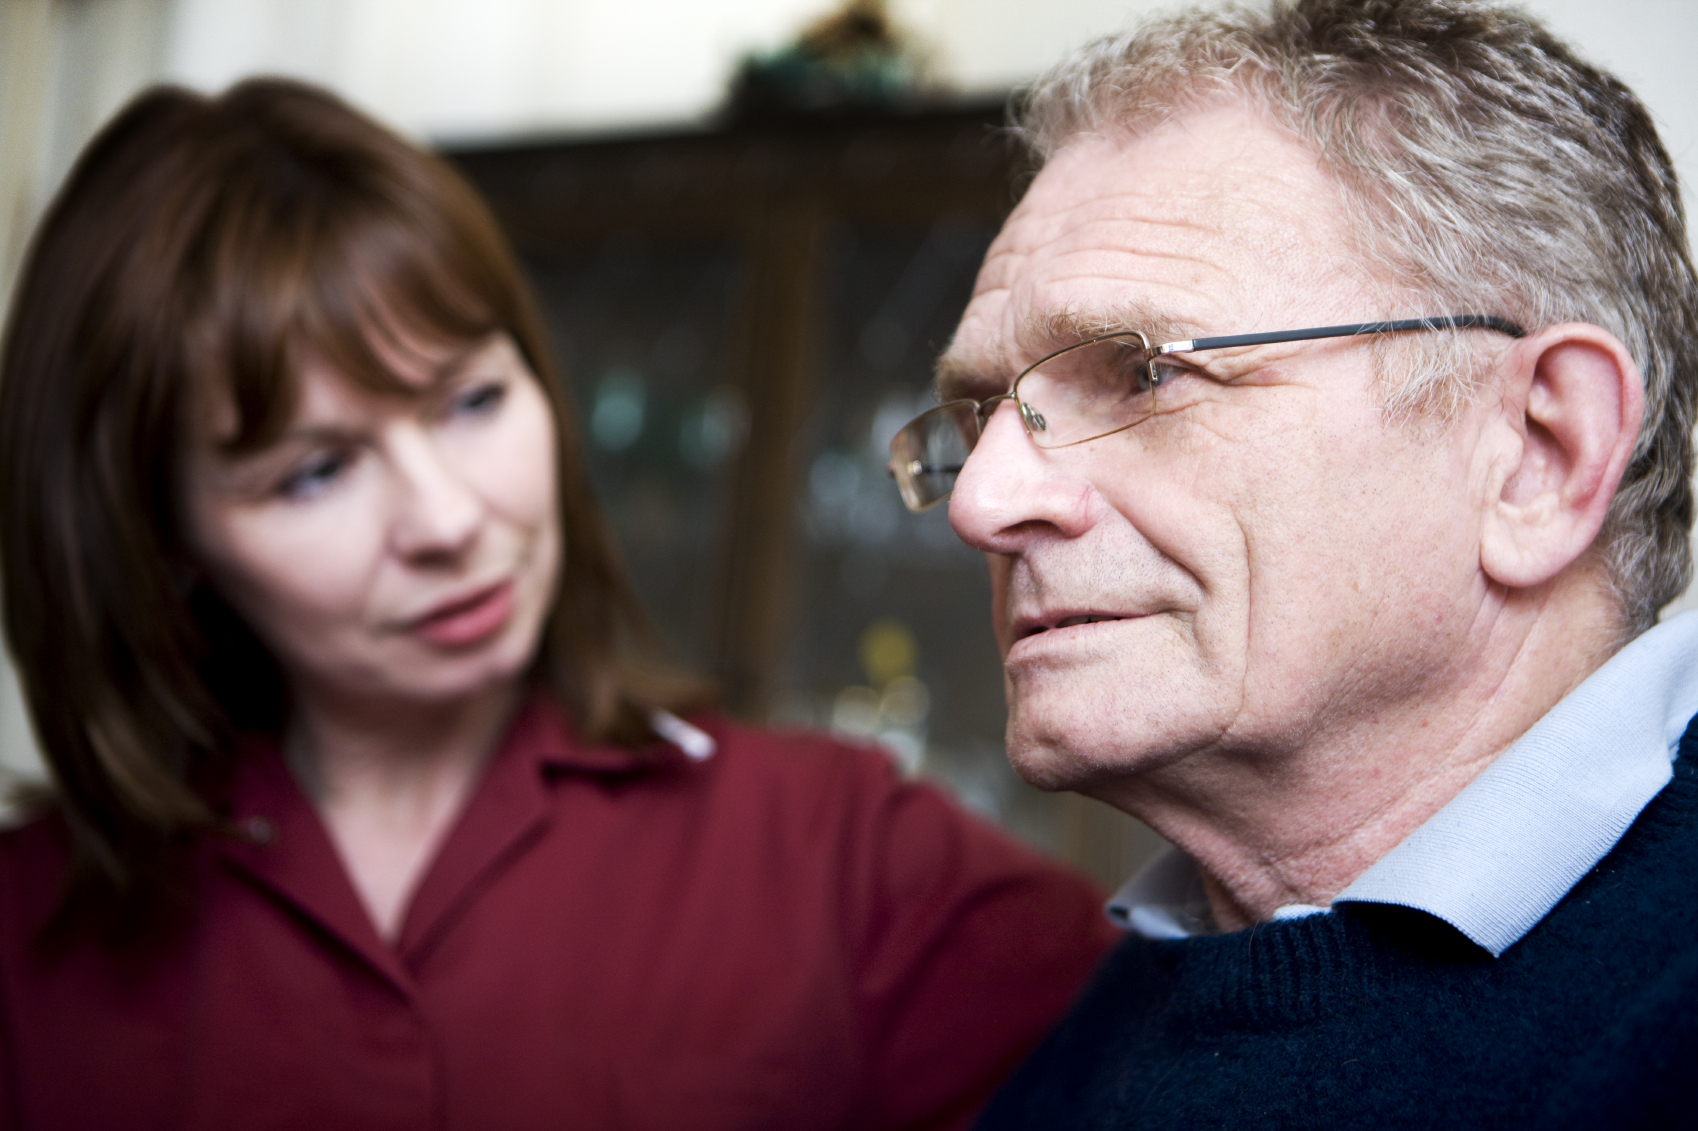 A Social worker talking to a man